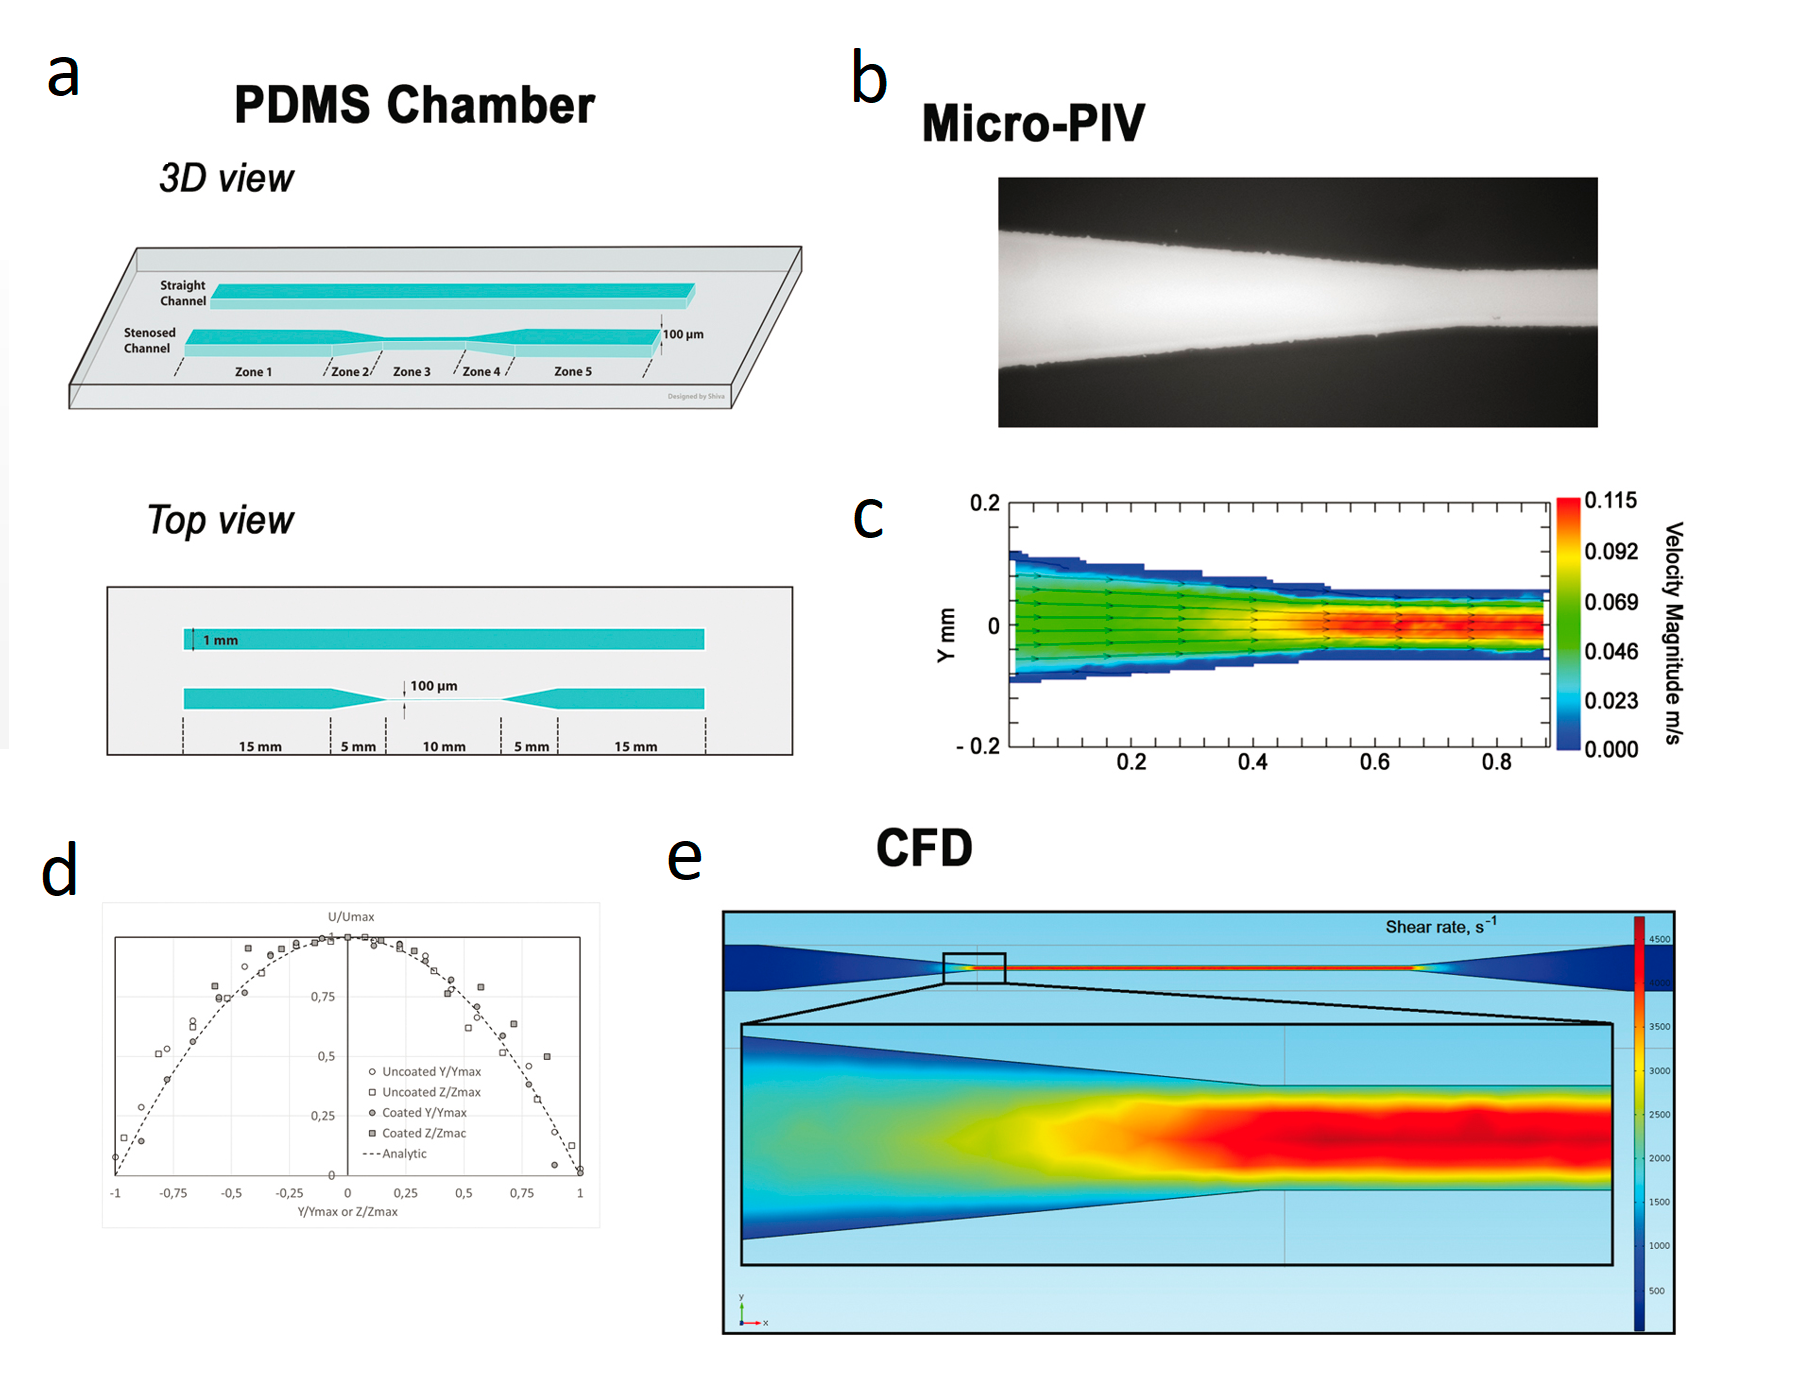 Schematic of a microfluidic flow chamber designed to generate shear gradients. (а) Schematic of a polydimethylsiloxane (PDMS) microfluidic flow chamber containing a straight rectangular channel 1 mm wide and 0.1 mm height, and a stenotic channel of similar dimensions, but providing a 90% width reduction in the central region (zone 3). Zones 1 through 5 are labeled in the bottom of the schematics showing 3D view. (b) Microphotograph of a microfluidic flow chamber from a fluorescent microscope: transition from zone 2 to zone 3 of the stenotic channel. Image was obtained with x20 objective. (c) Map of velocity magnitude at mean height in the stenotic canal, obtained using velocimetry imaging of microparticles: transition from zone 2 to zone 3. (d) Dimensionless velocity profiles U⁄Umax as a function of Y⁄Ymax or Z ⁄Zmax (U is the magnitude velocity, Ymax - stenosis half-width, Zmax - half-height) at the average height and average width of the microfluidic flow chamber in zone 3. (e) Computational fluid dynamics analysis representing the shear rate at the bottom of the chamber (z = 0) throughout the chamber and in the enlarged area, corresponding to the entrance to zone 3. The geometry of the channel in the computational fluid dynamics (CFD) model corresponded to the stenotic version of the chamber shown in panel (a). Figure adapted from [20].